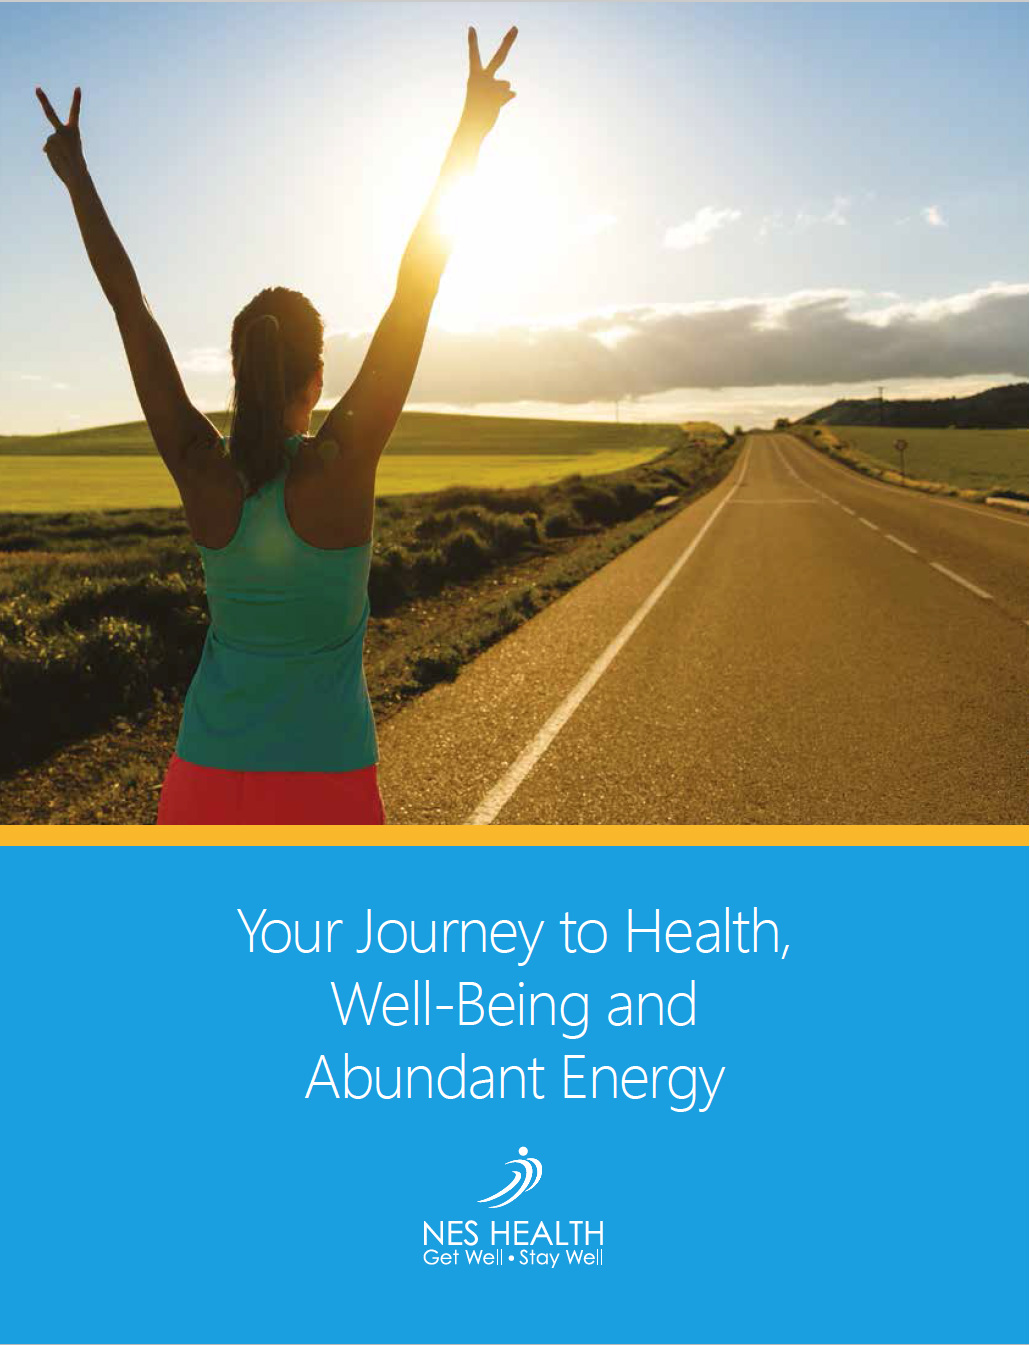 NES Health journey to health ebook.